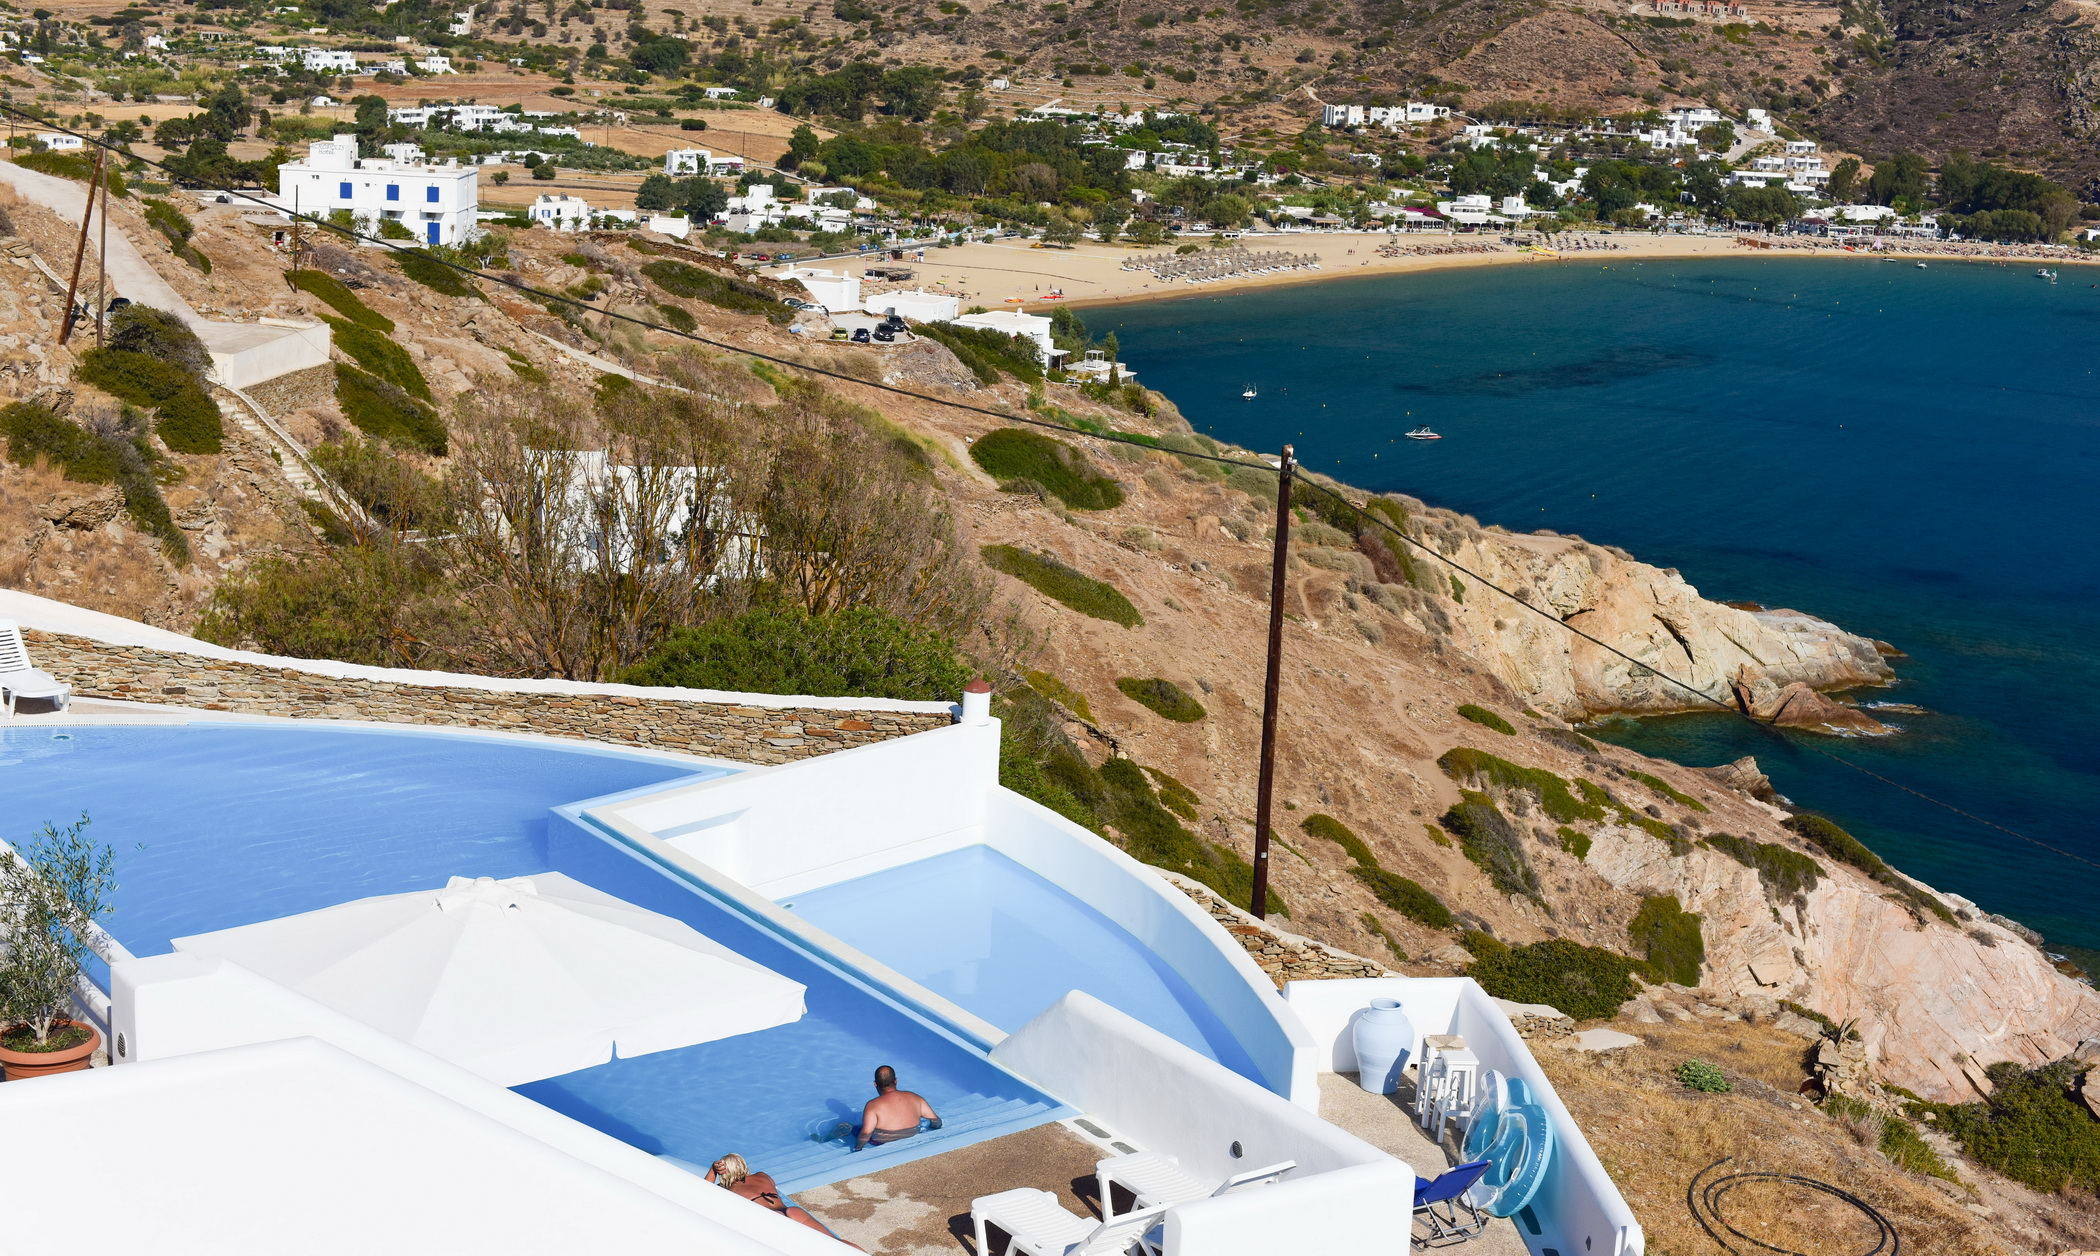 Petradi Hotel Ios Island Greece (7)